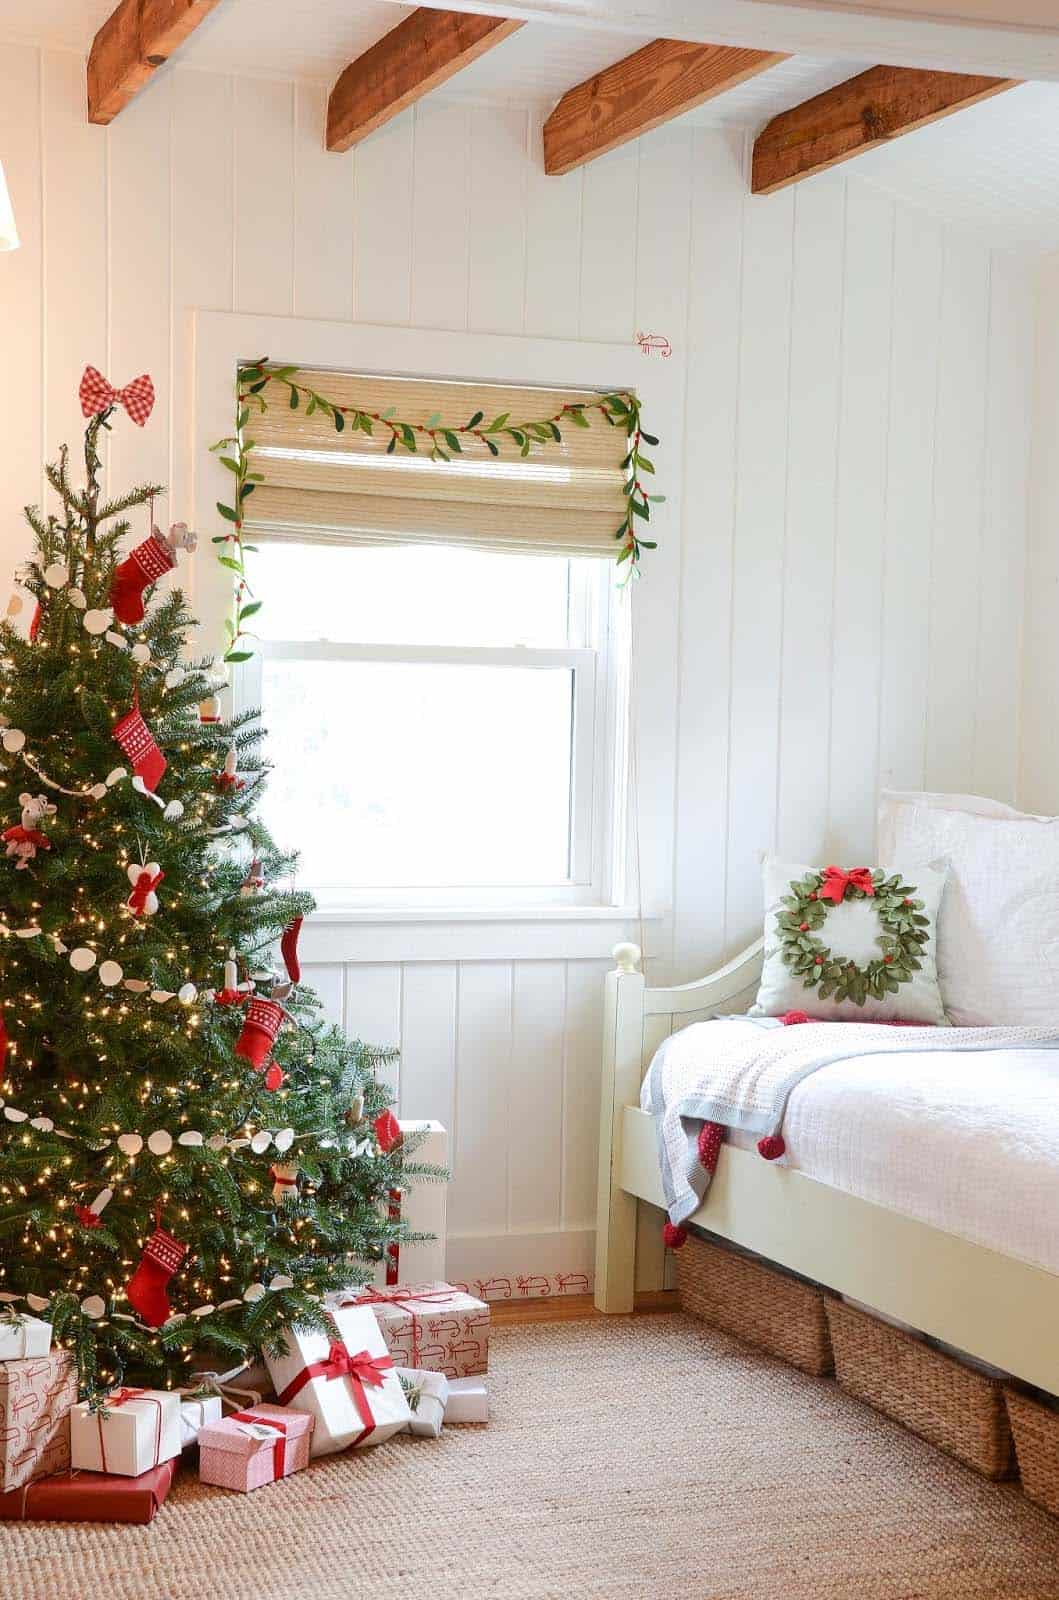 Christmas Bedroom Decorating Ideas-14-1 Kindesign